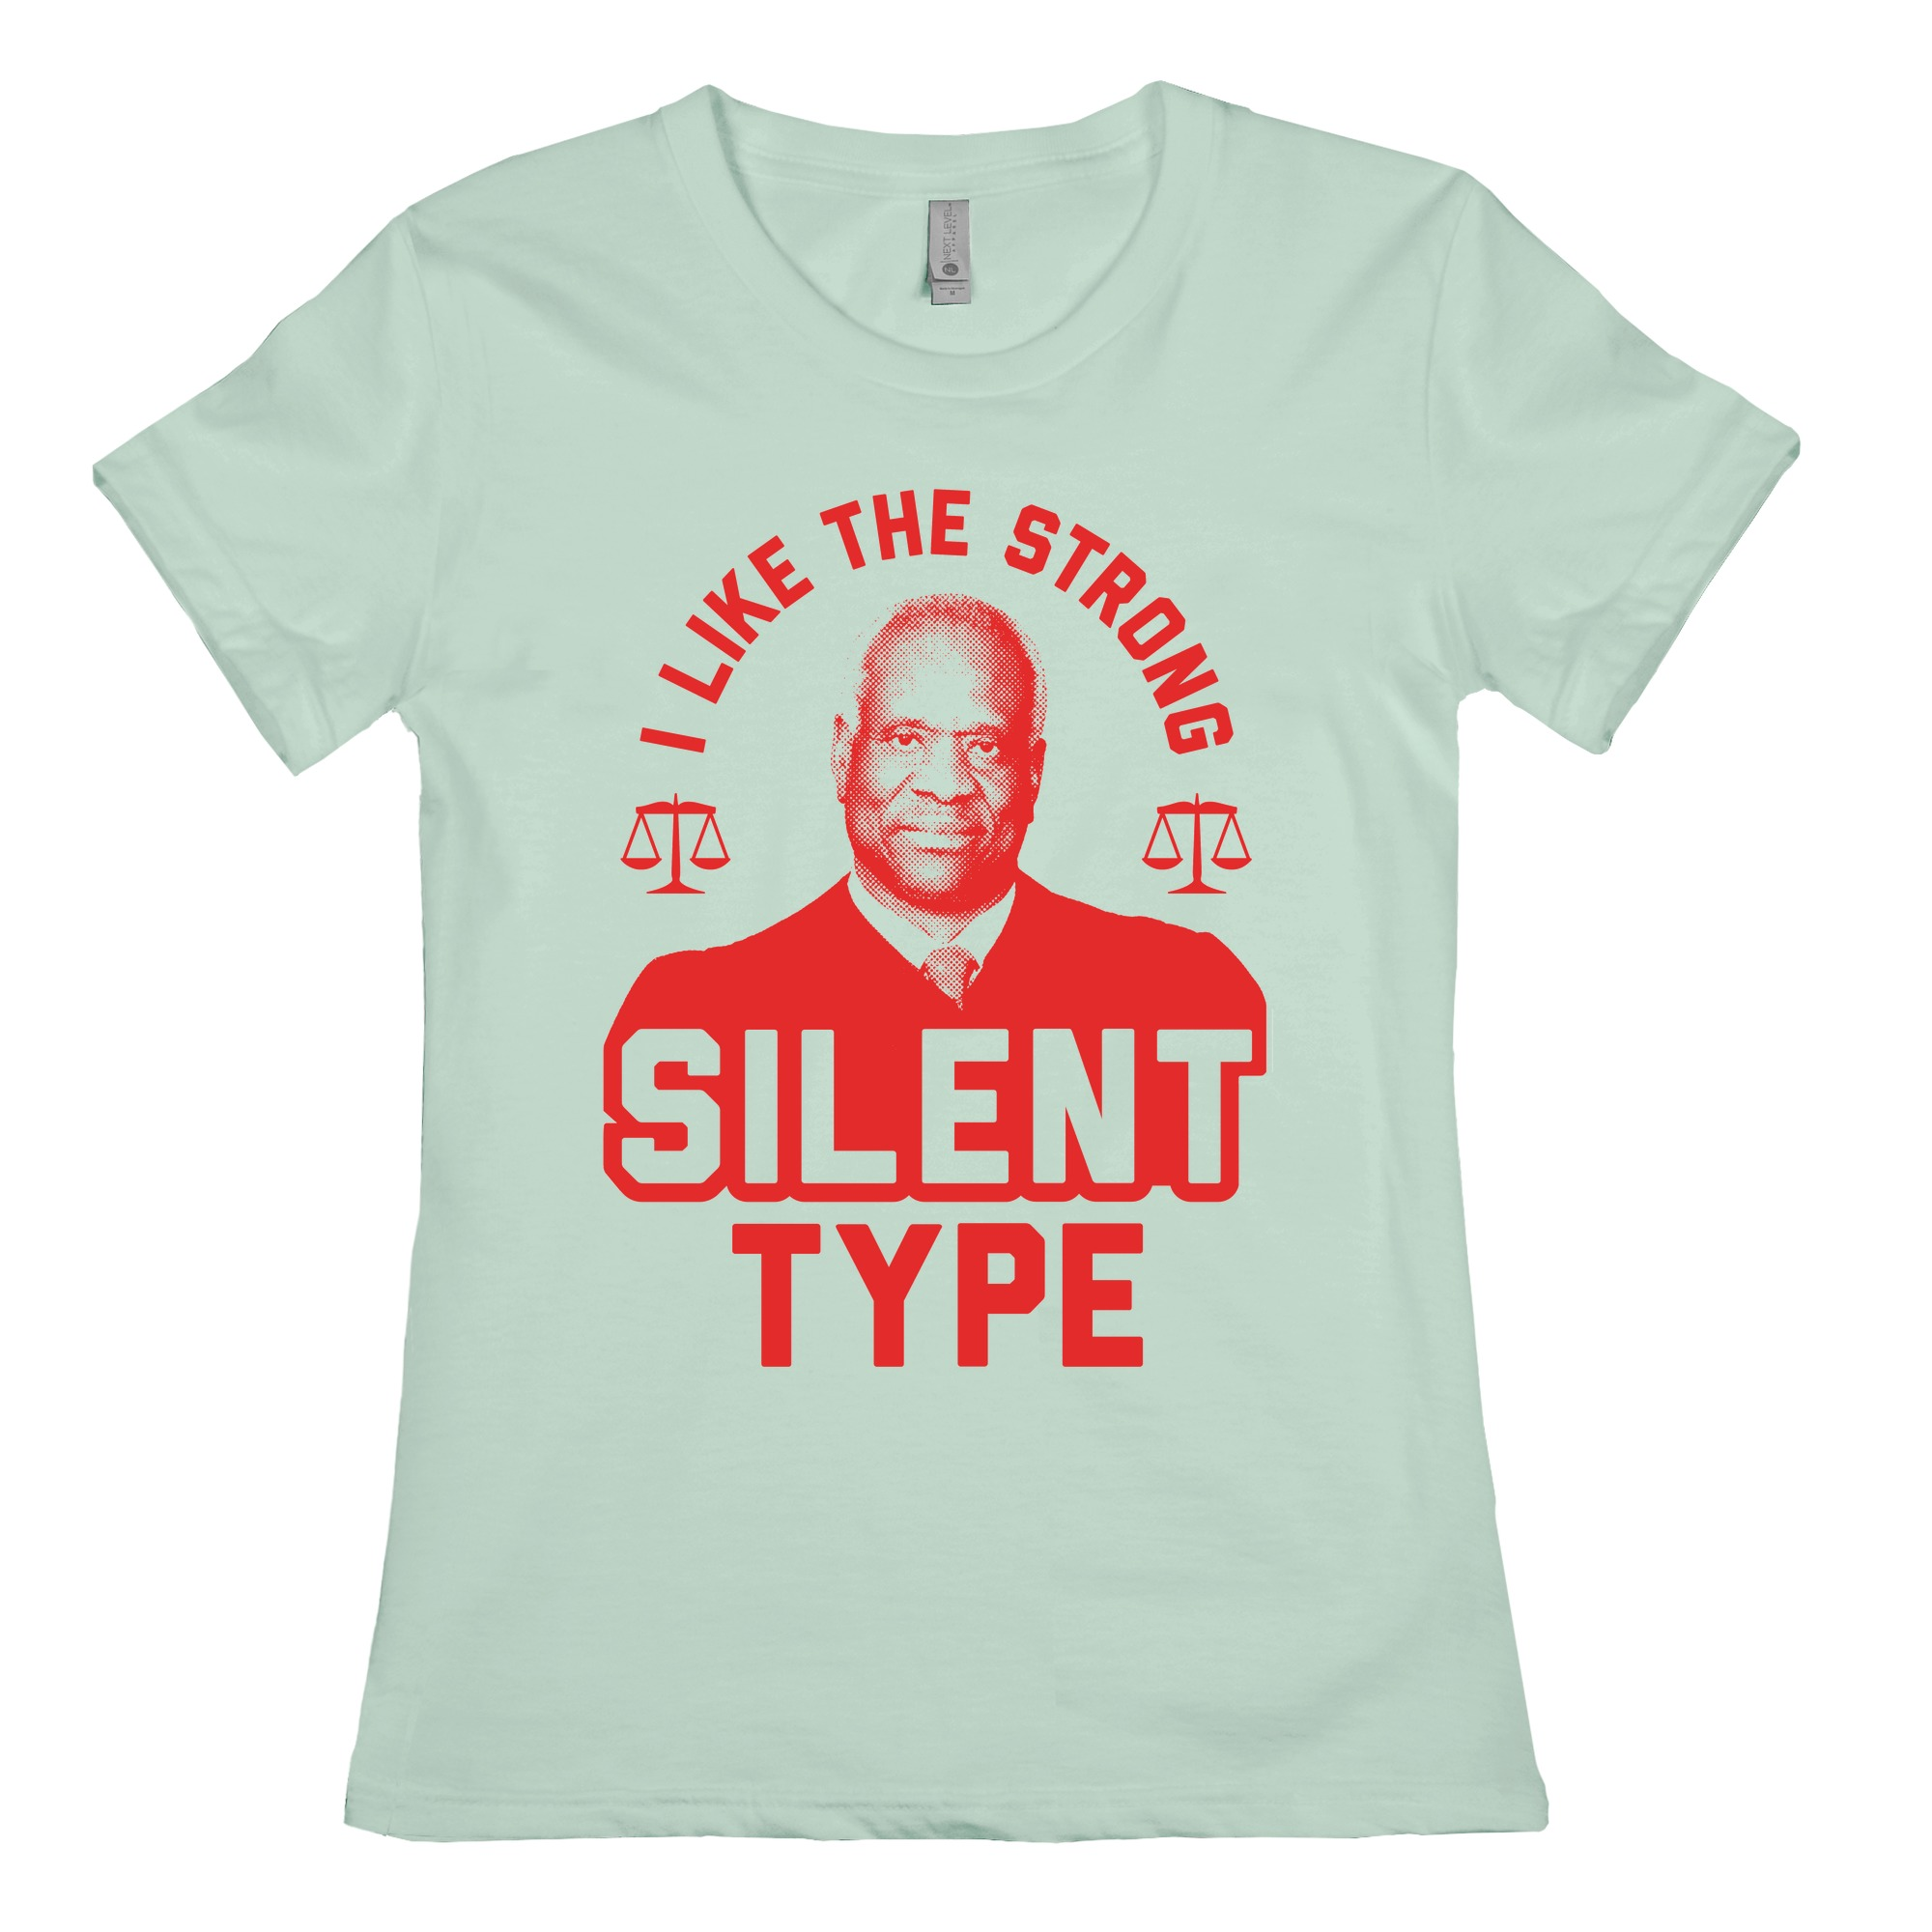 The Strong Silent Type